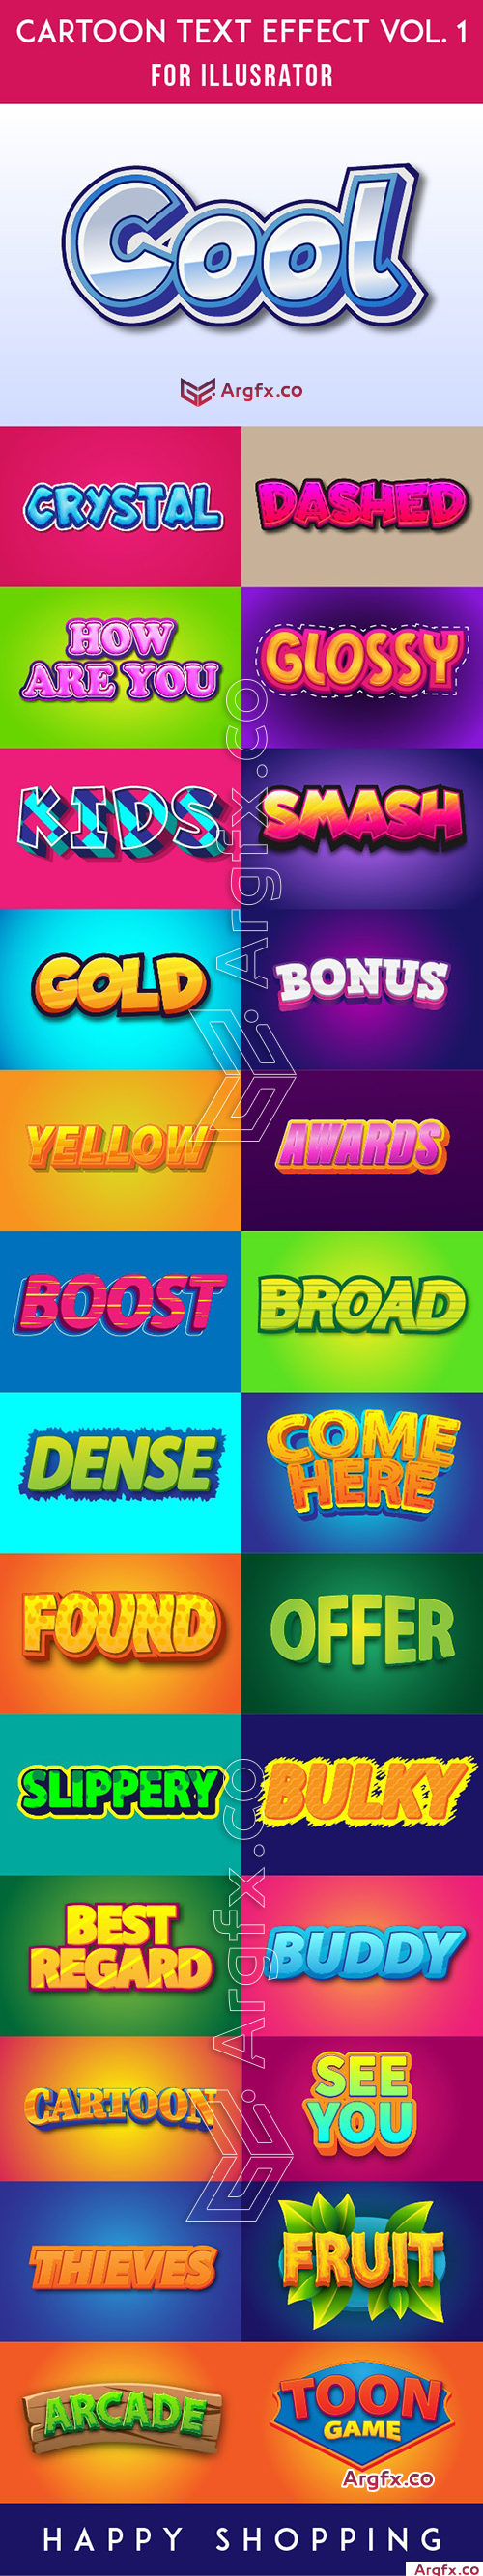 Cartoon AI Text Effect 27 Style Vol. 1 2999624